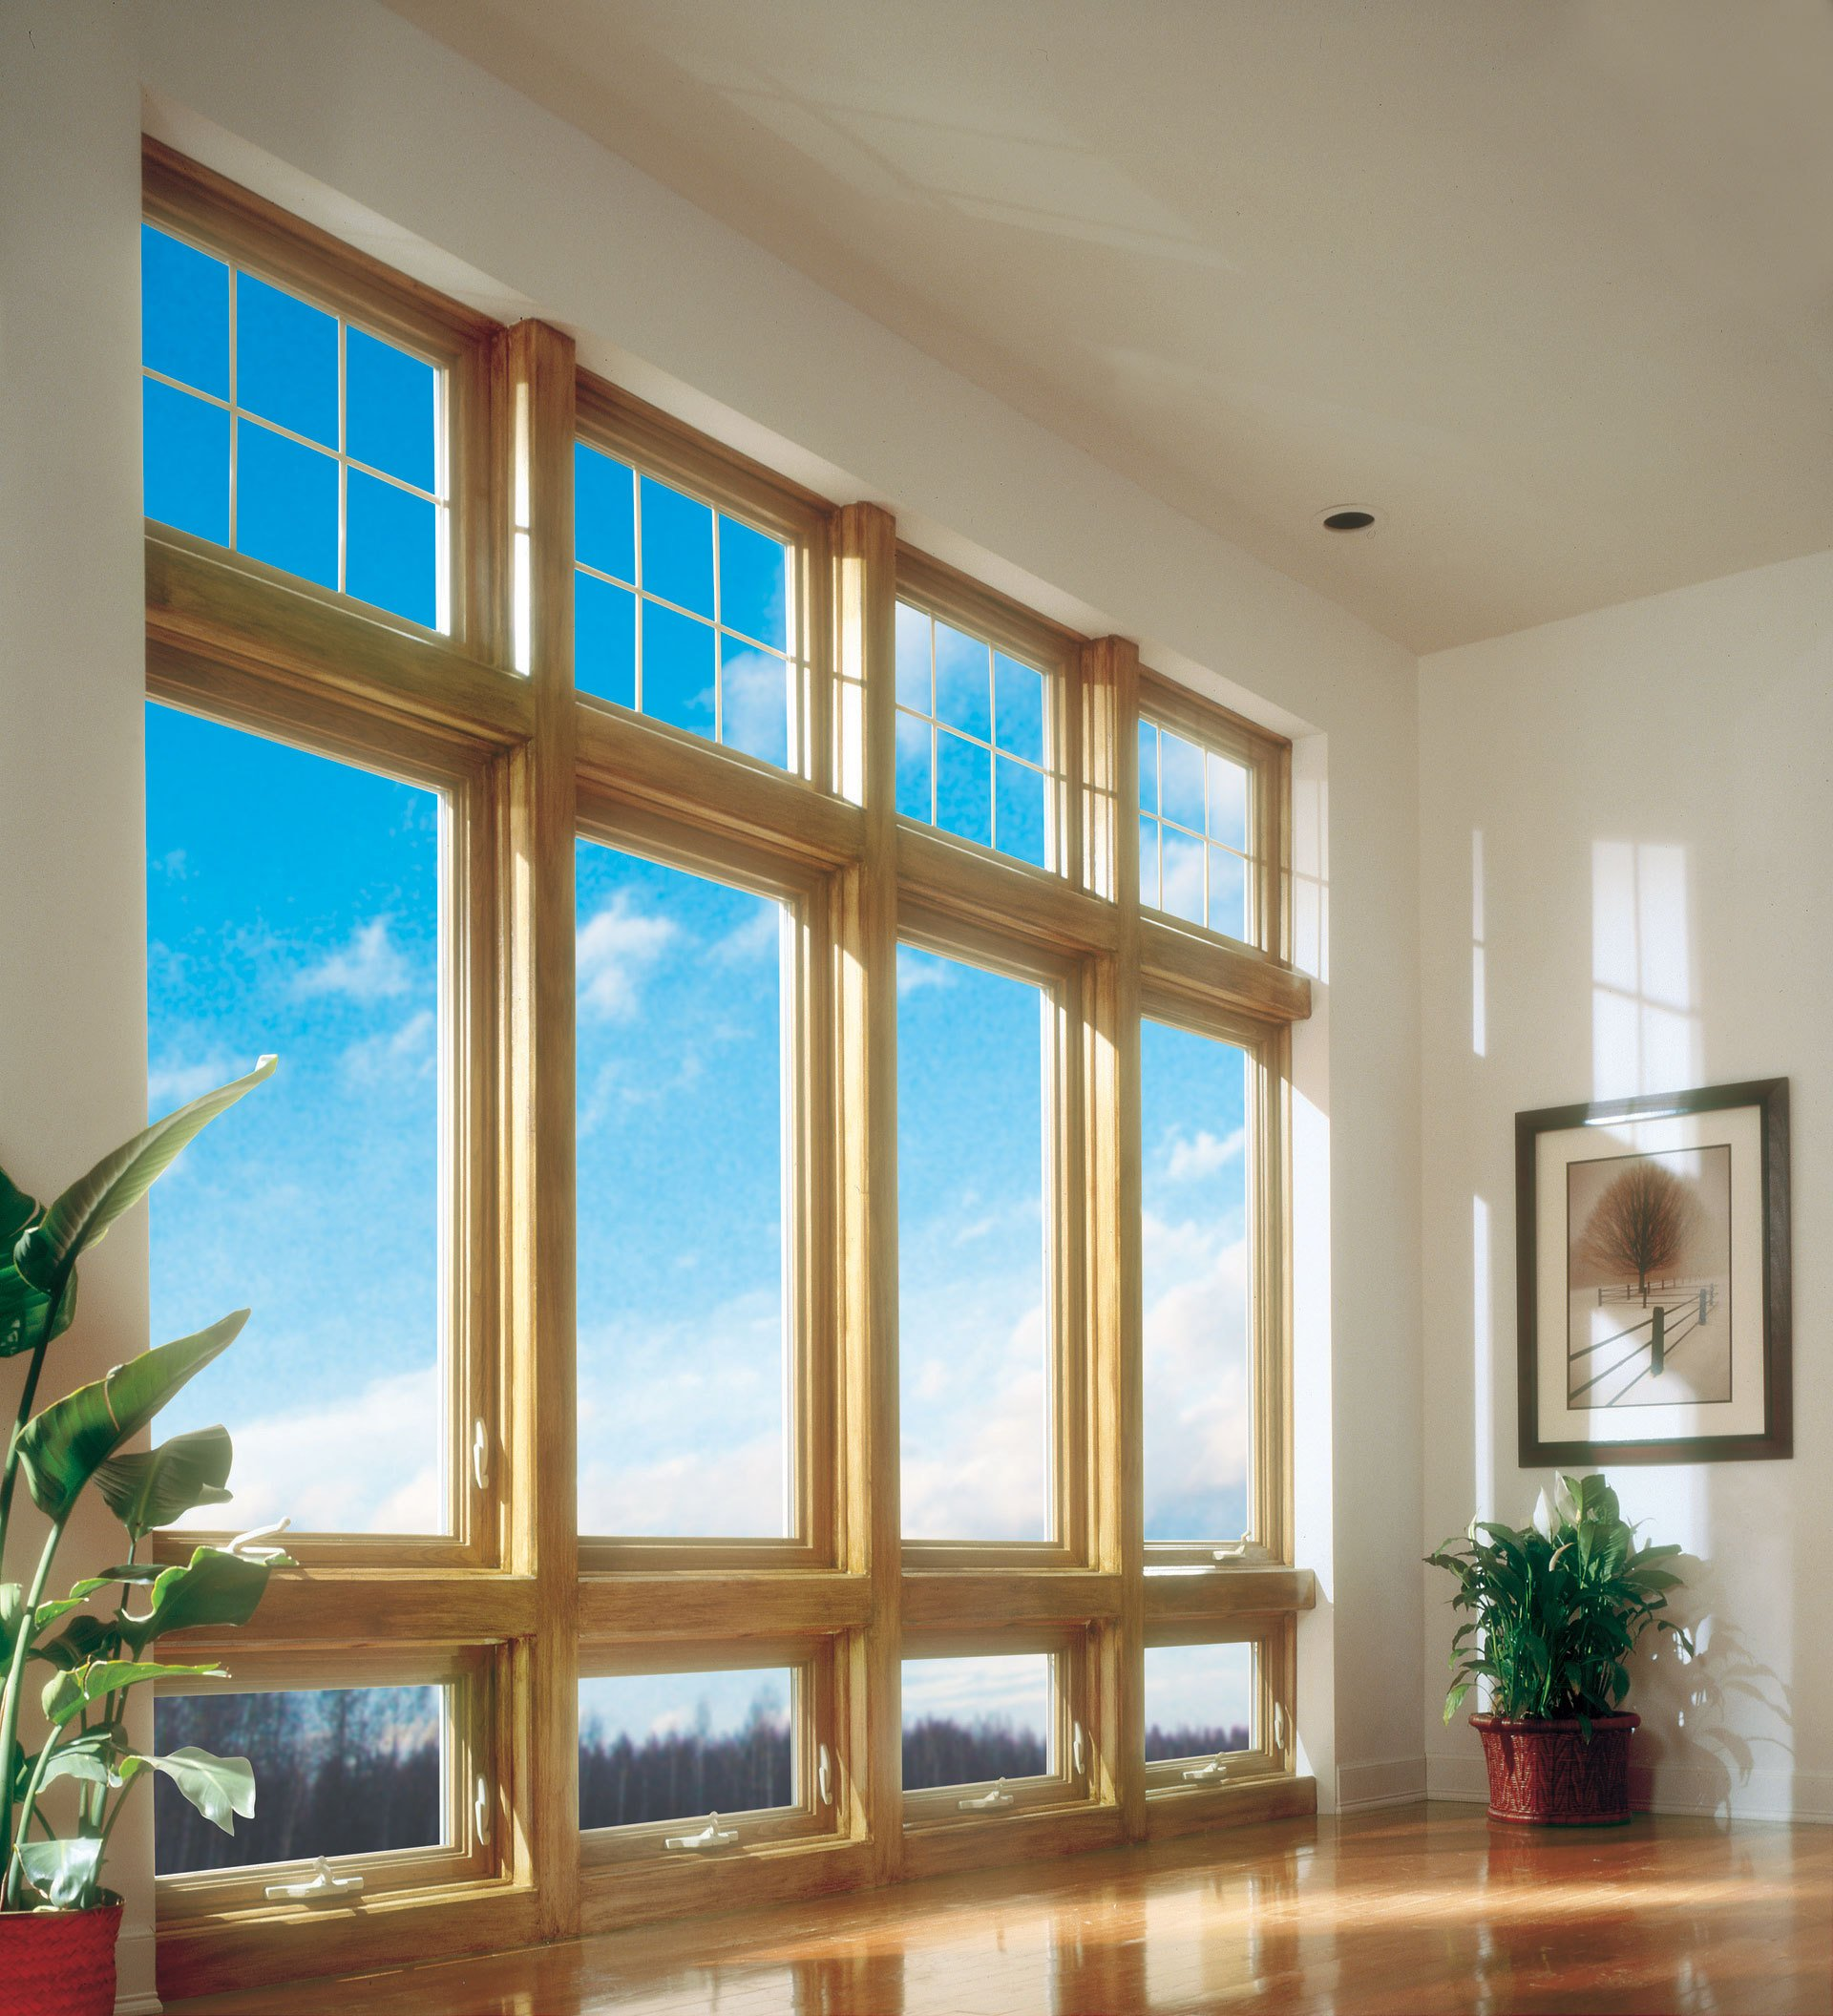 Vinyl replacement windows in cincinnati oh Super insulated windows